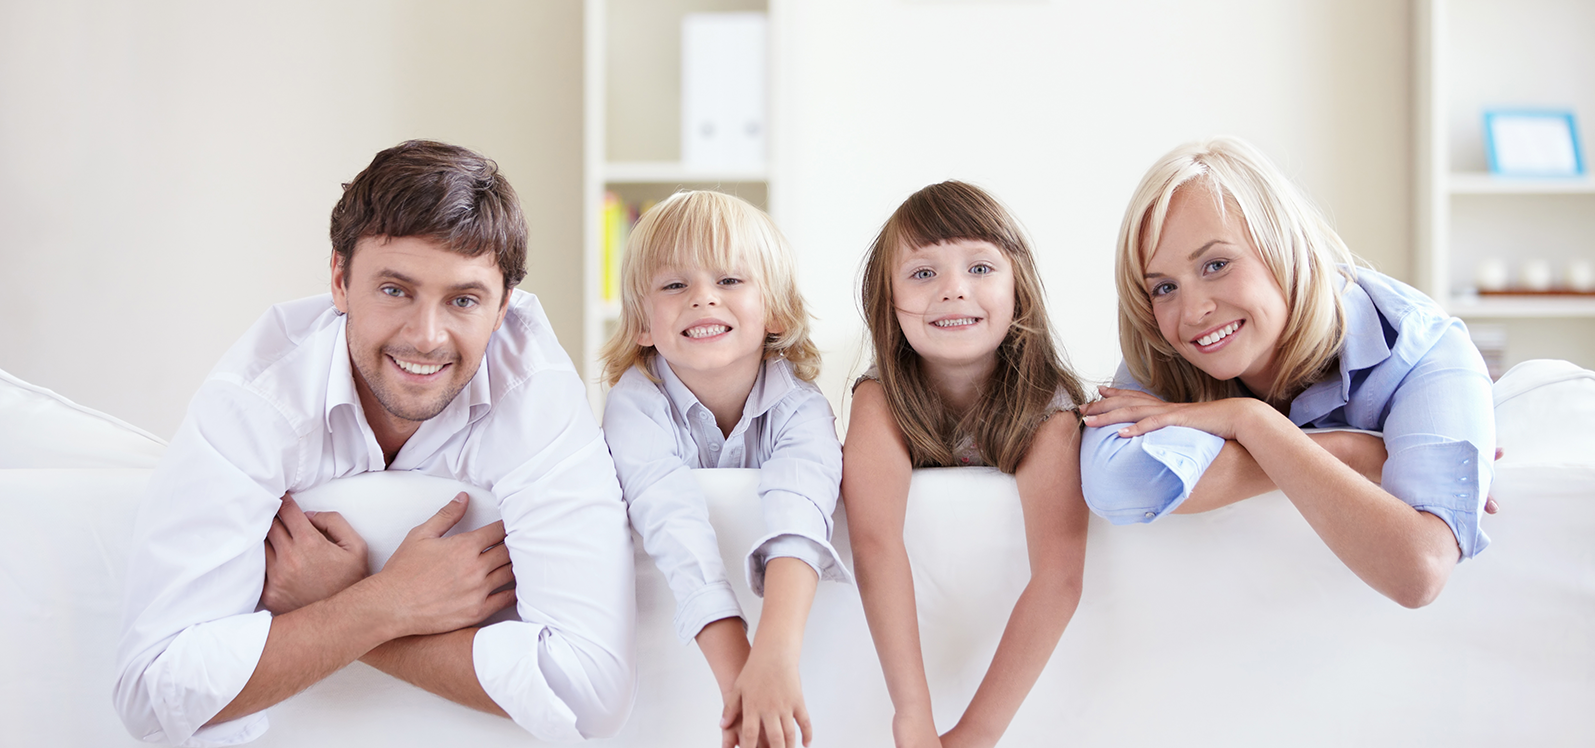 Dallas Dental Group reviews | 15123 Prestonwood Blvd - Dallas TX